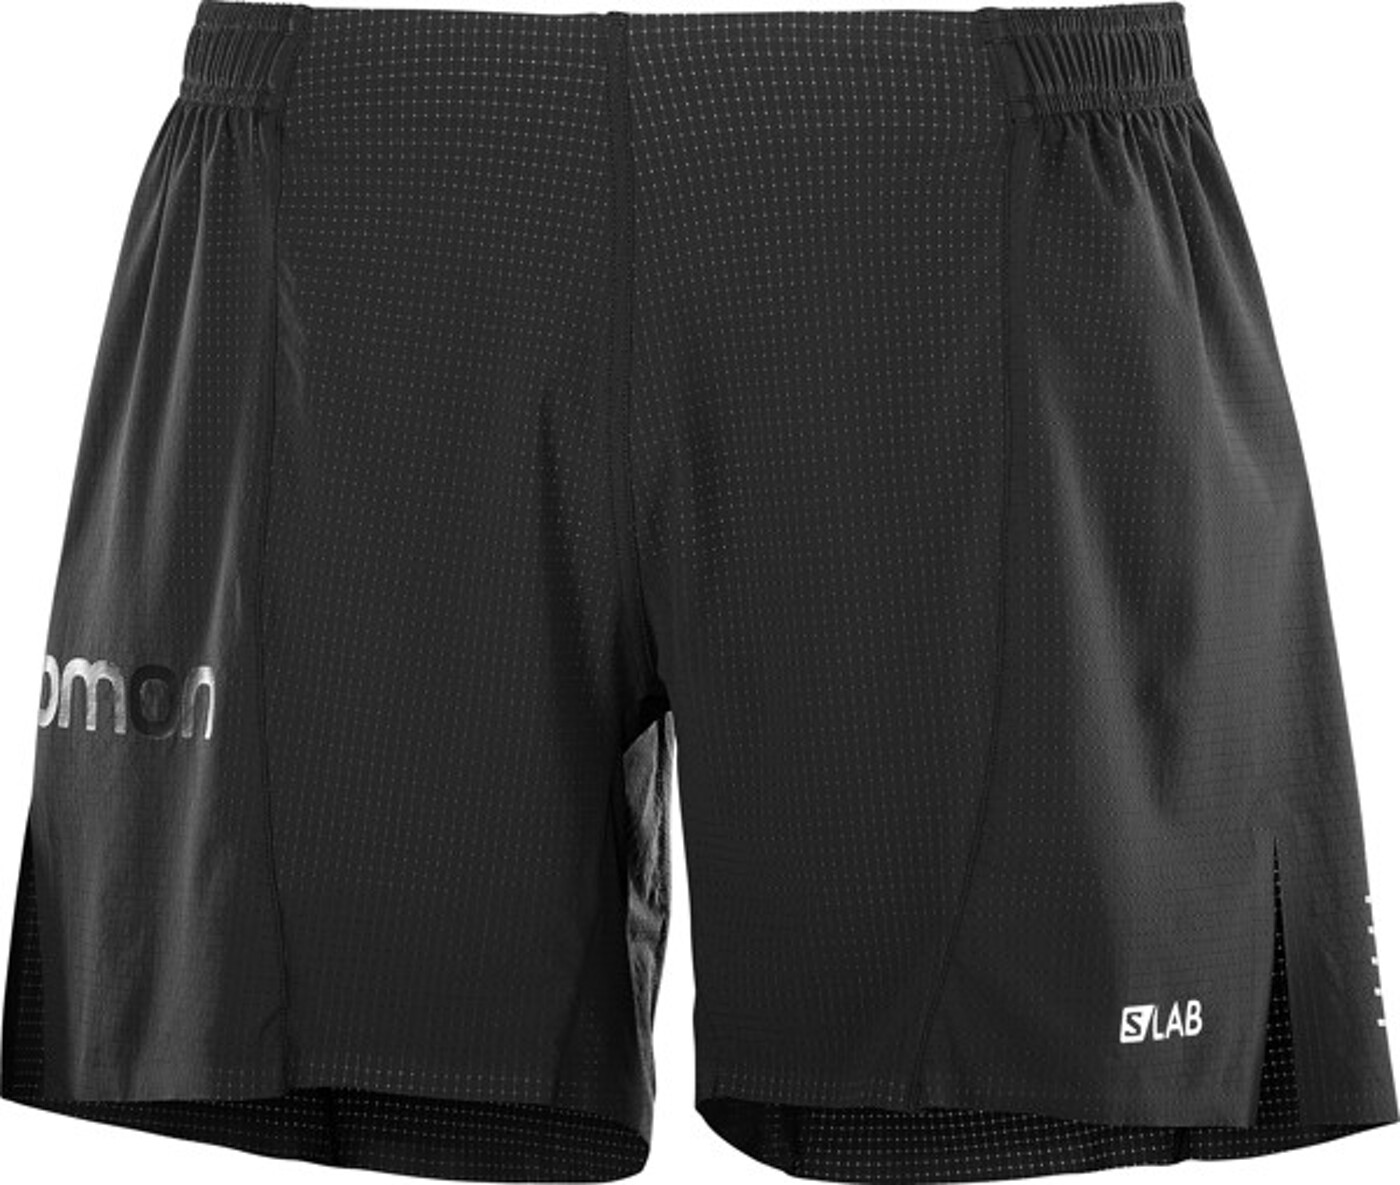 SALOMON S/LAB OUTER 6 - Shorts - Herren